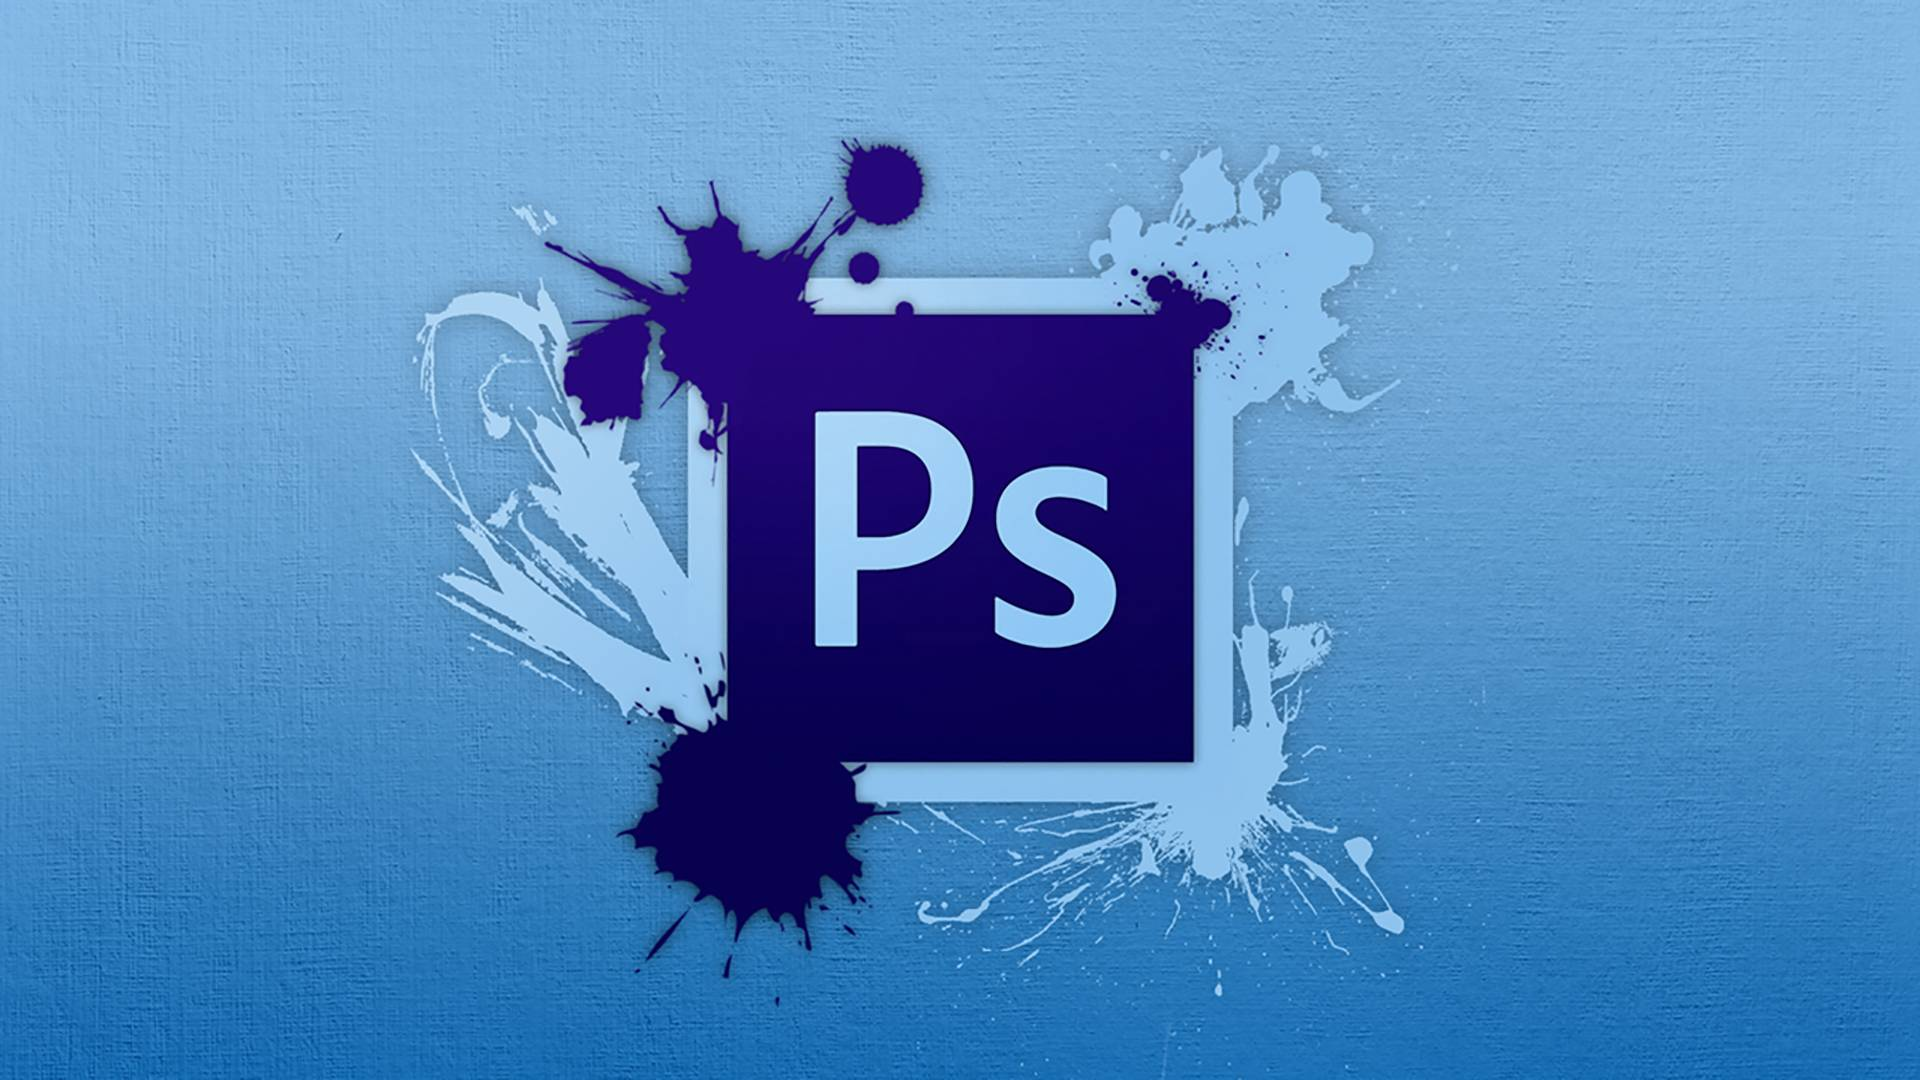 Logo de inicio de Photoshop CS6